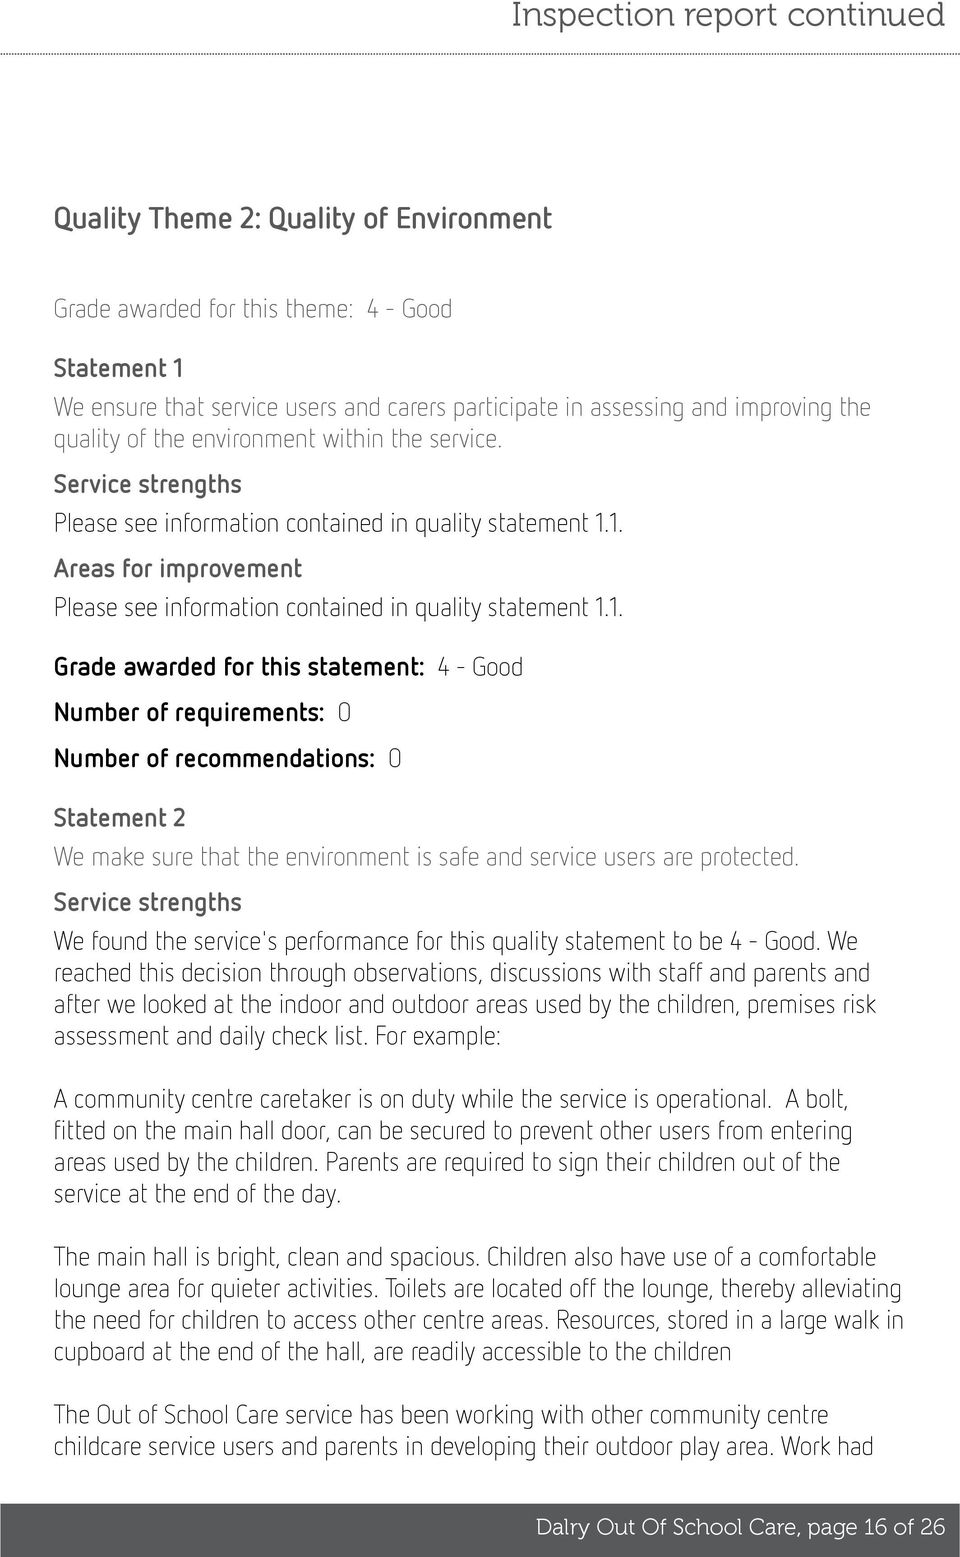 1. Areas for improvement Please see information contained in quality statement 1.1. Grade awarded for this statement: 4 - Good Number of requirements: 0 Number of recommendations: 0 Statement 2 We make sure that the environment is safe and service users are protected.